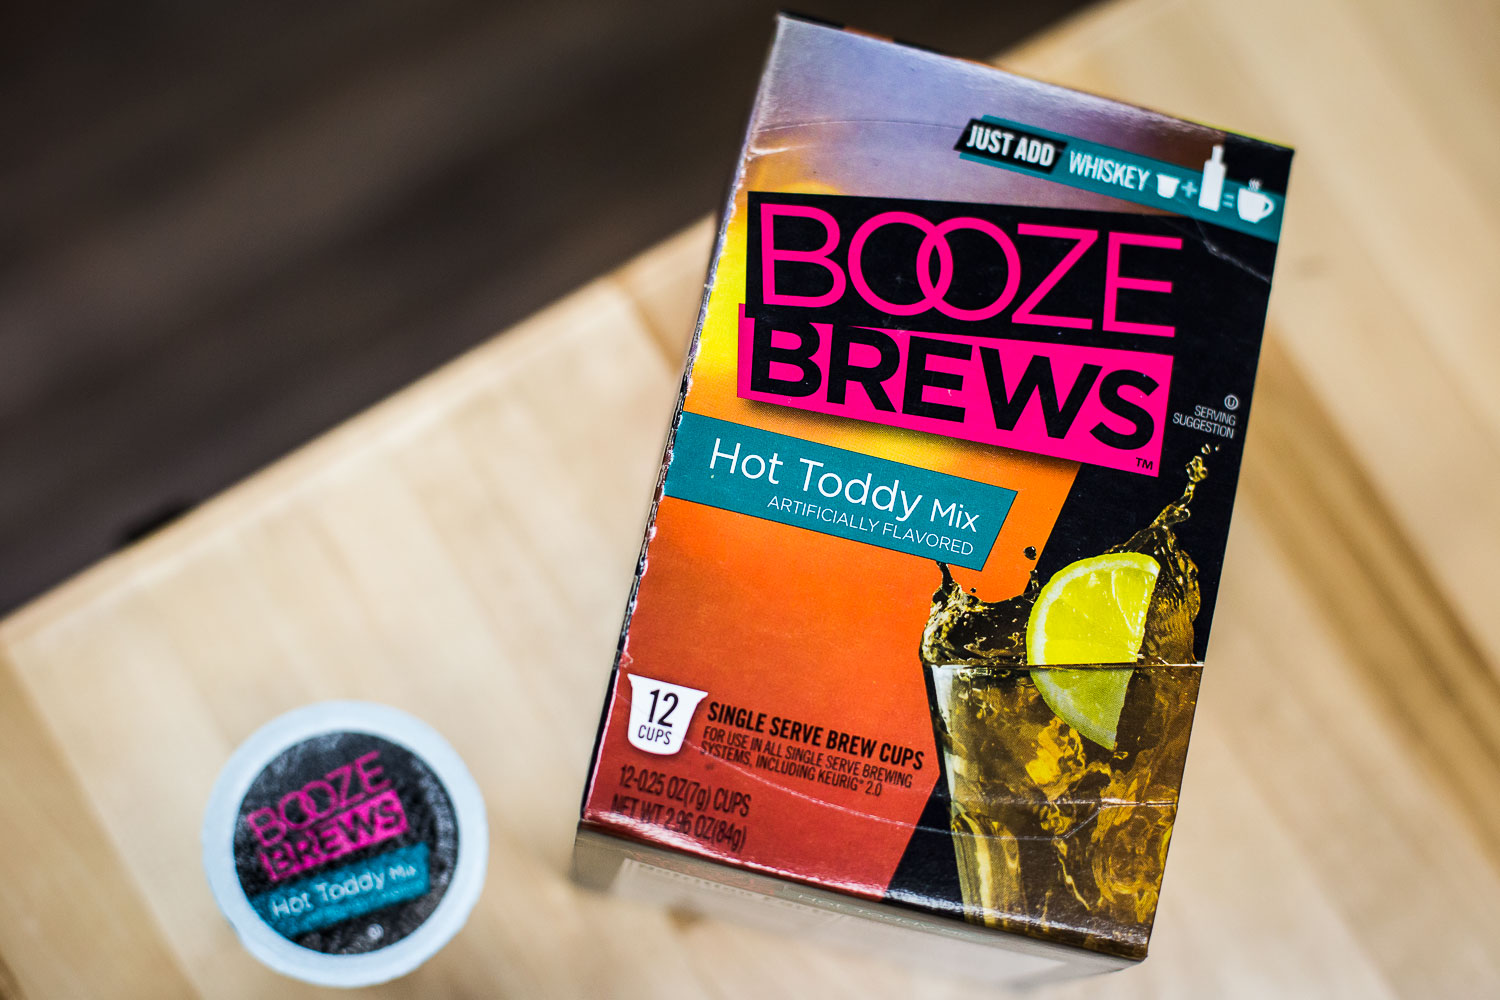 A gift with a little more of a kick! Booze Brews single serve brew cups provide the perfect pairing for classic concoctions.